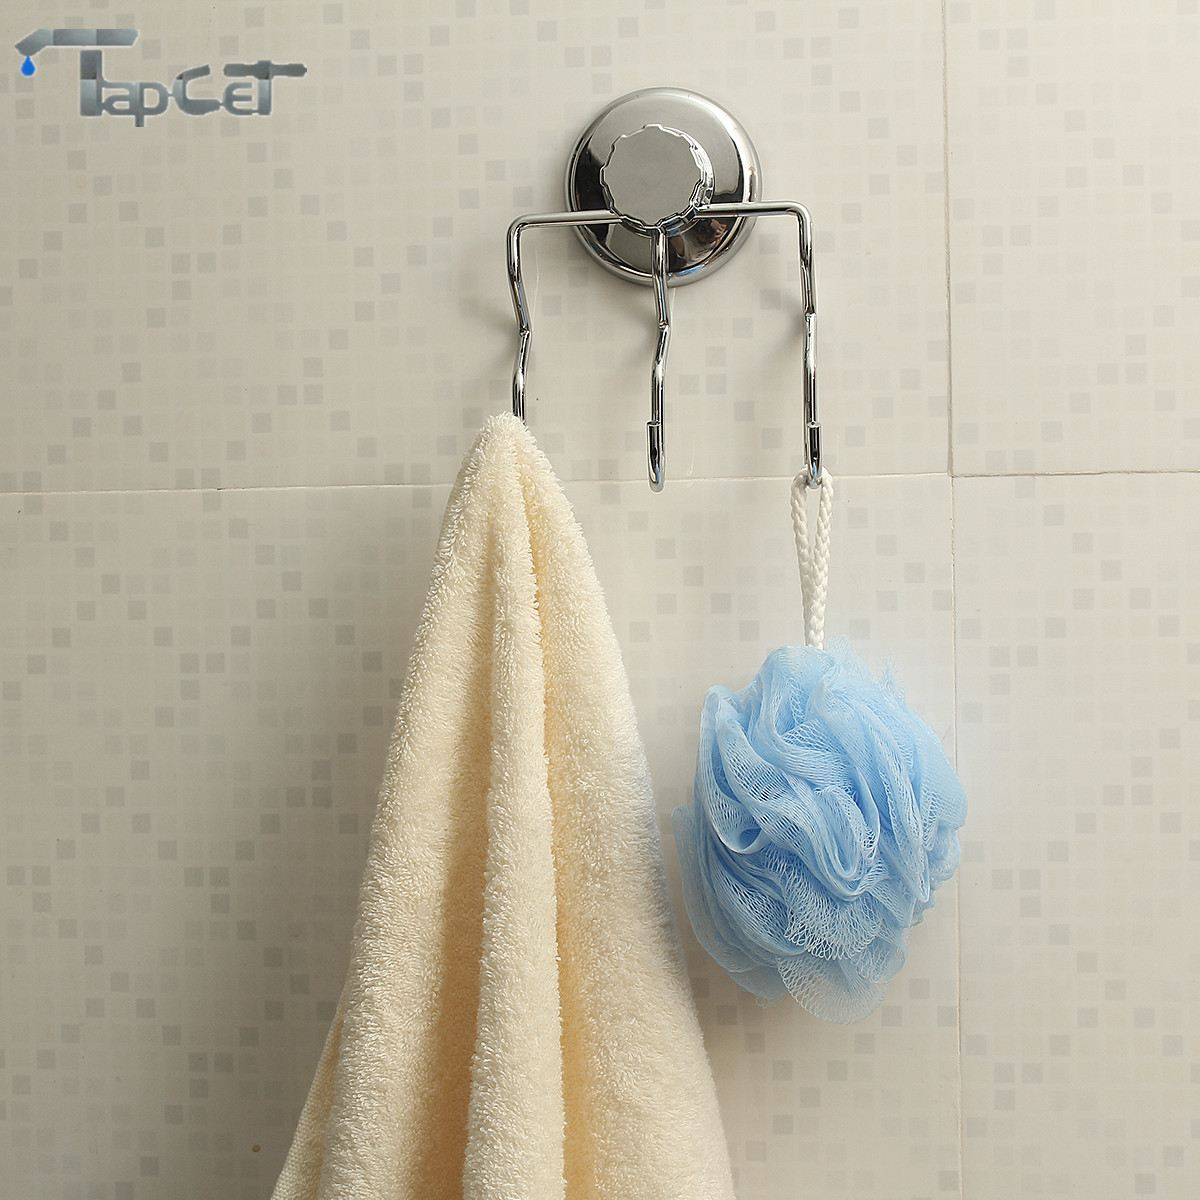 Aliexpress.com : Buy TAPCET Bathroom Kitchen Stainless Steel Robe ...